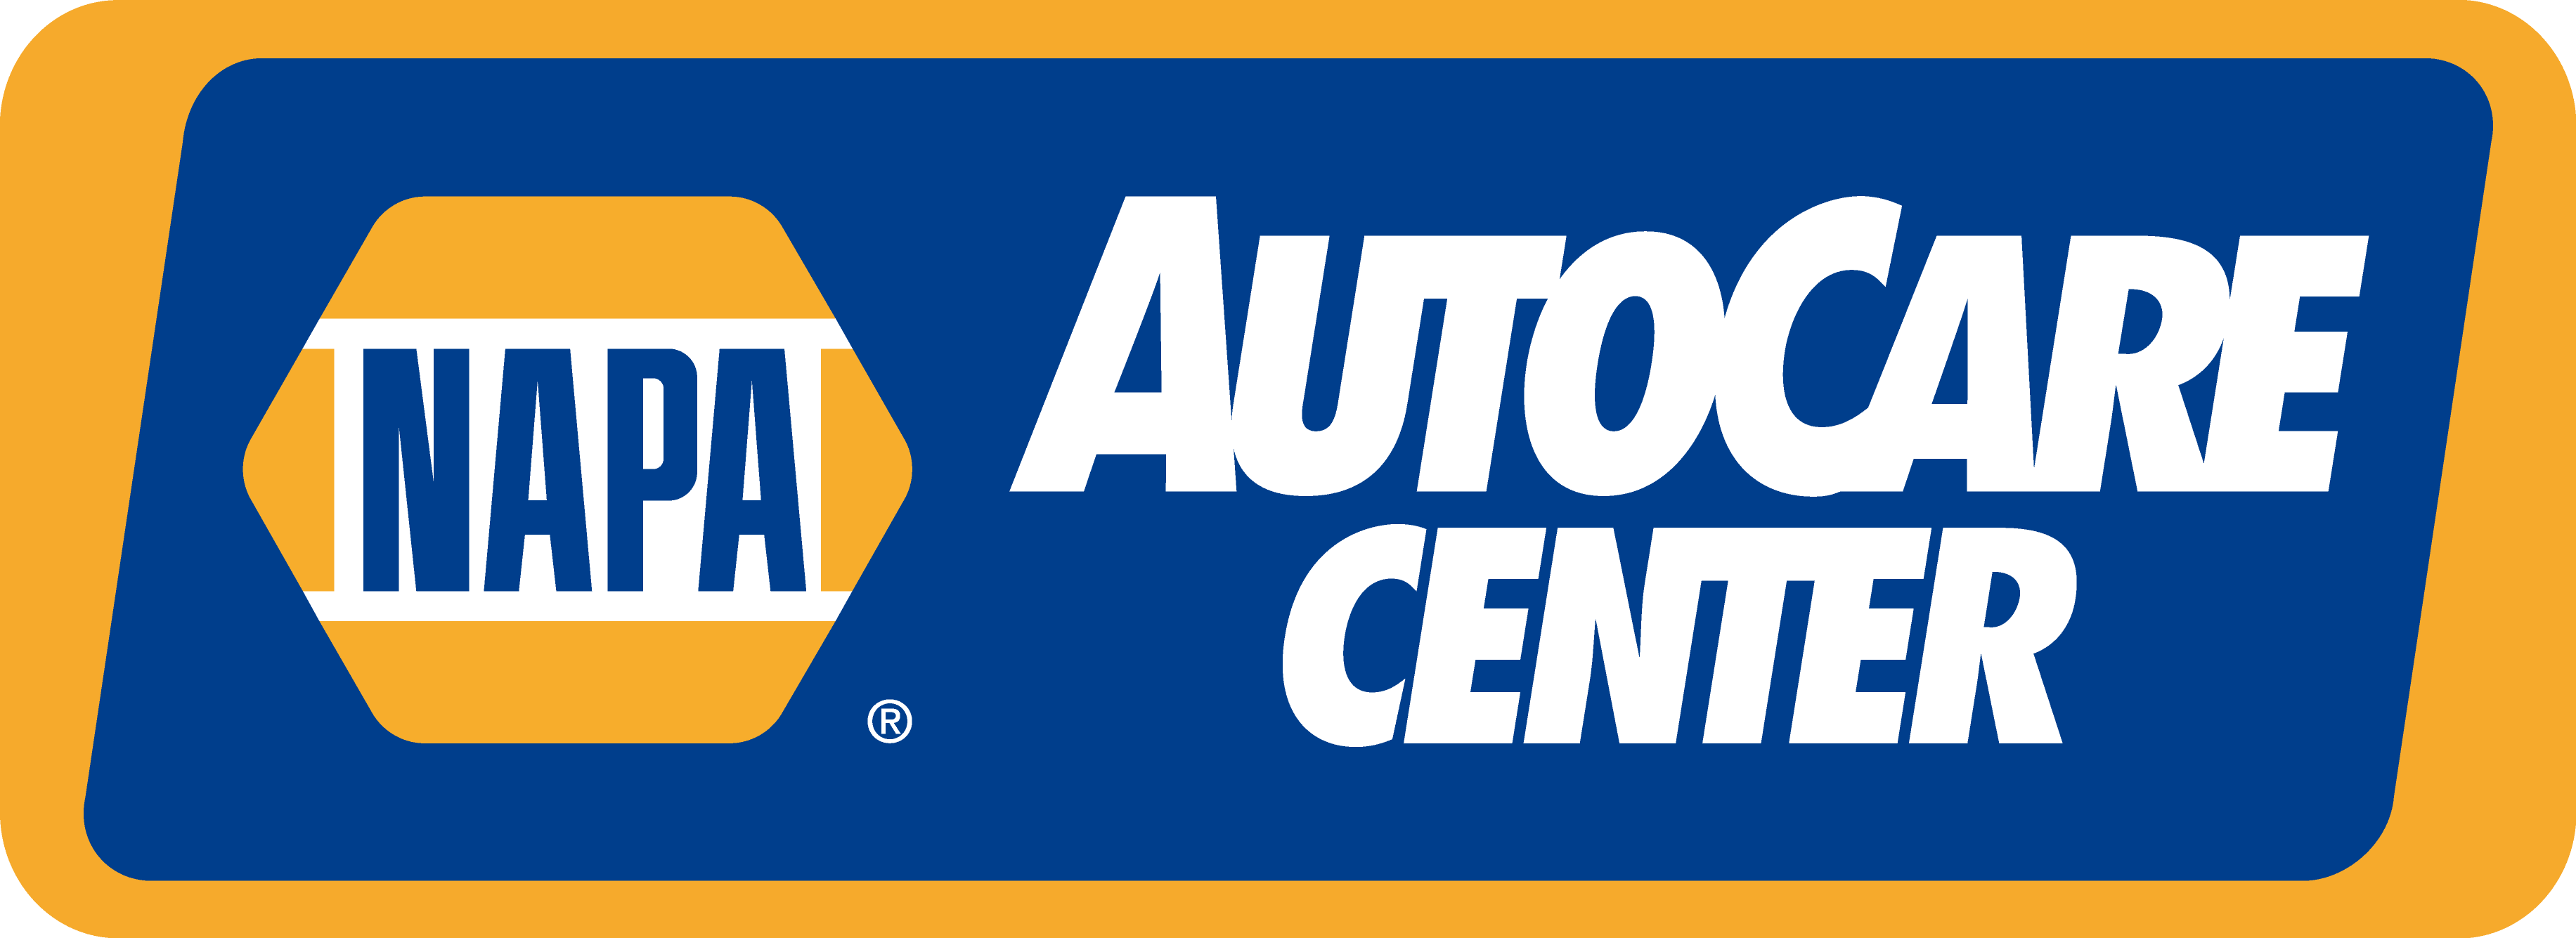 NAPA Auto Care Center, Redding One Stop Auto Repair, Redding, CA, 96002